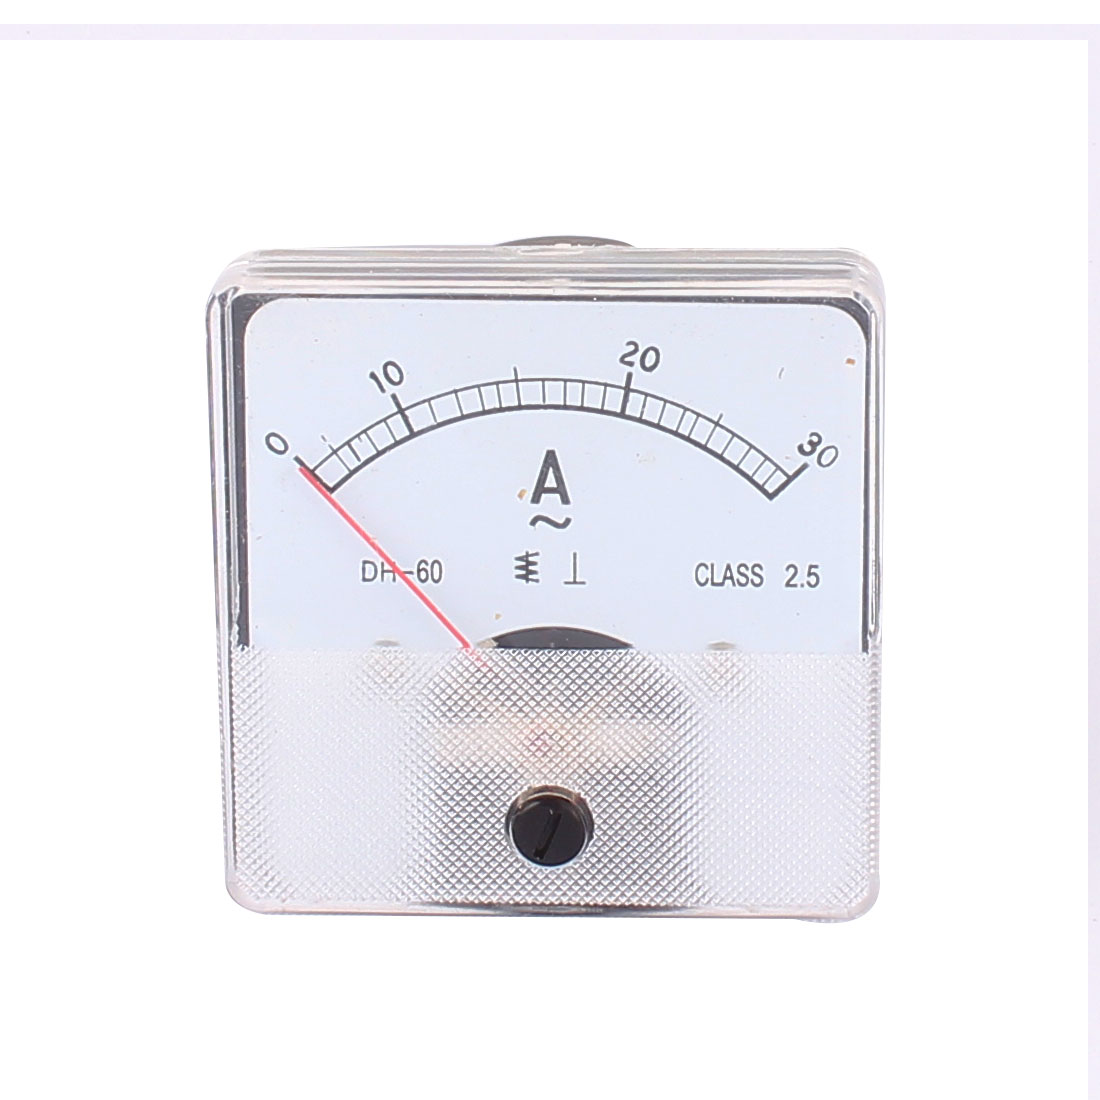 DH60 Pointer Needle DC 0-30A Current Tester Panel Analog Ammeter 60mm x 60mm